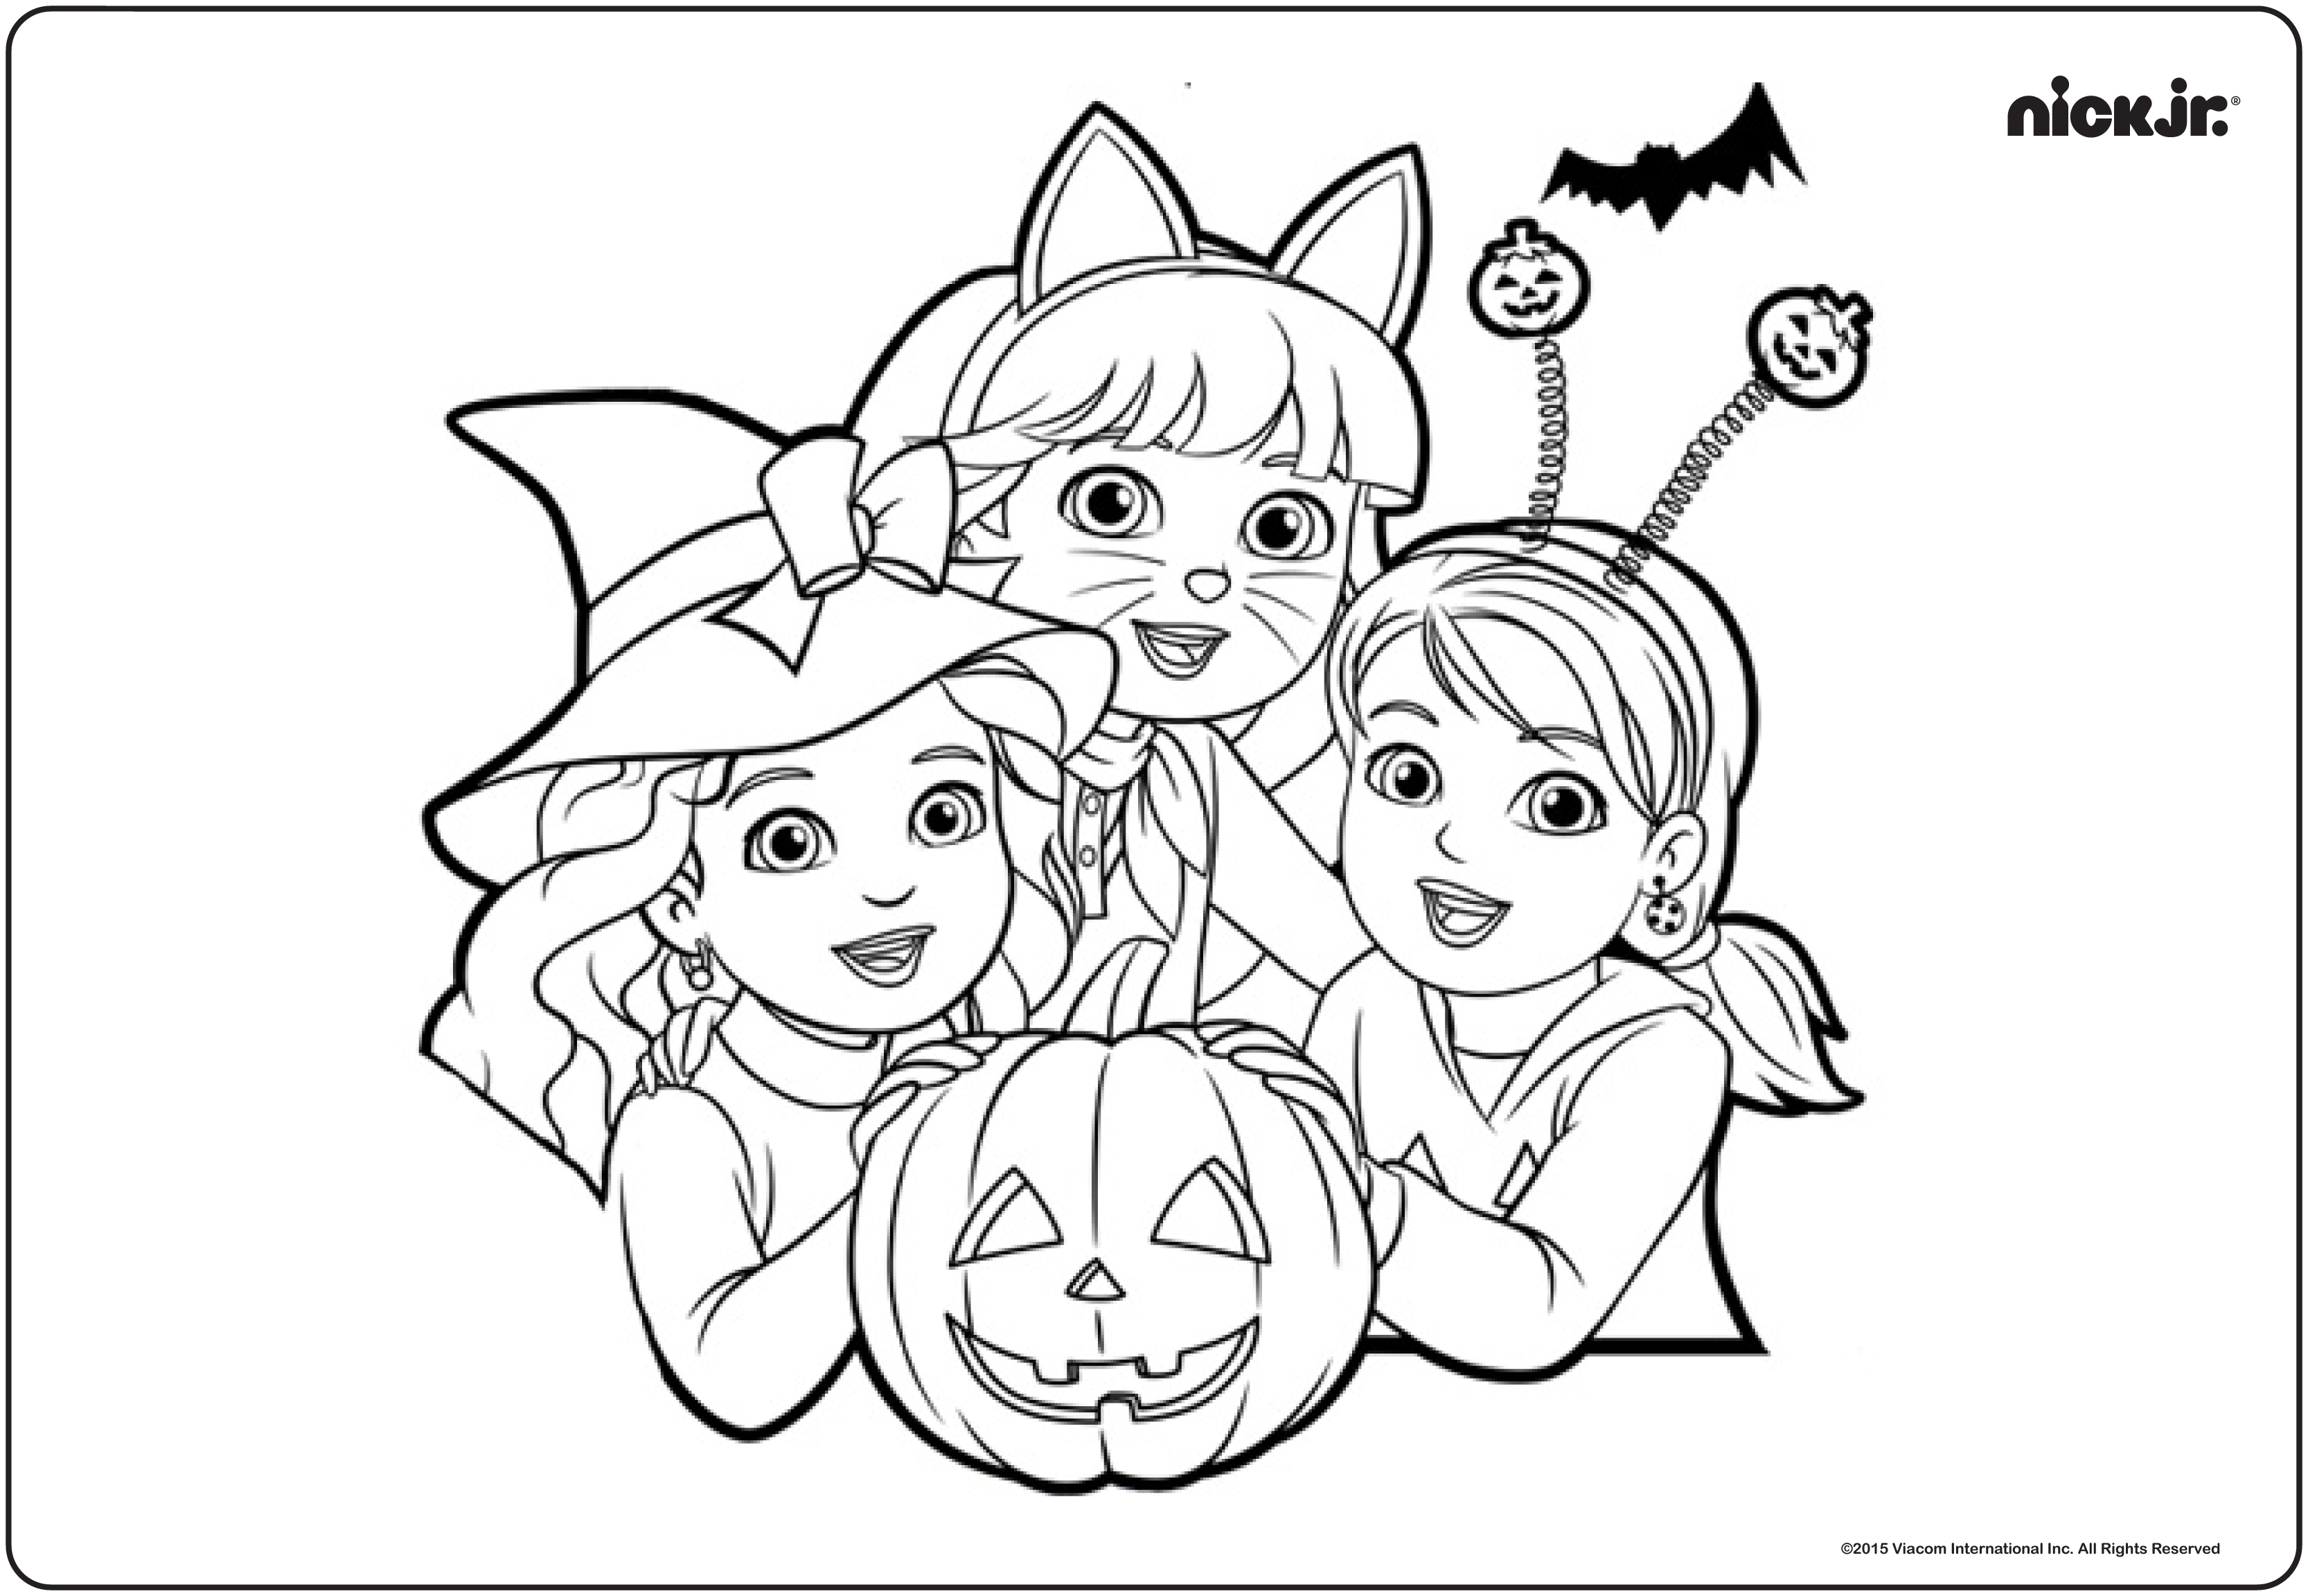 Nick Jr Pumpkin Party And Giveaway